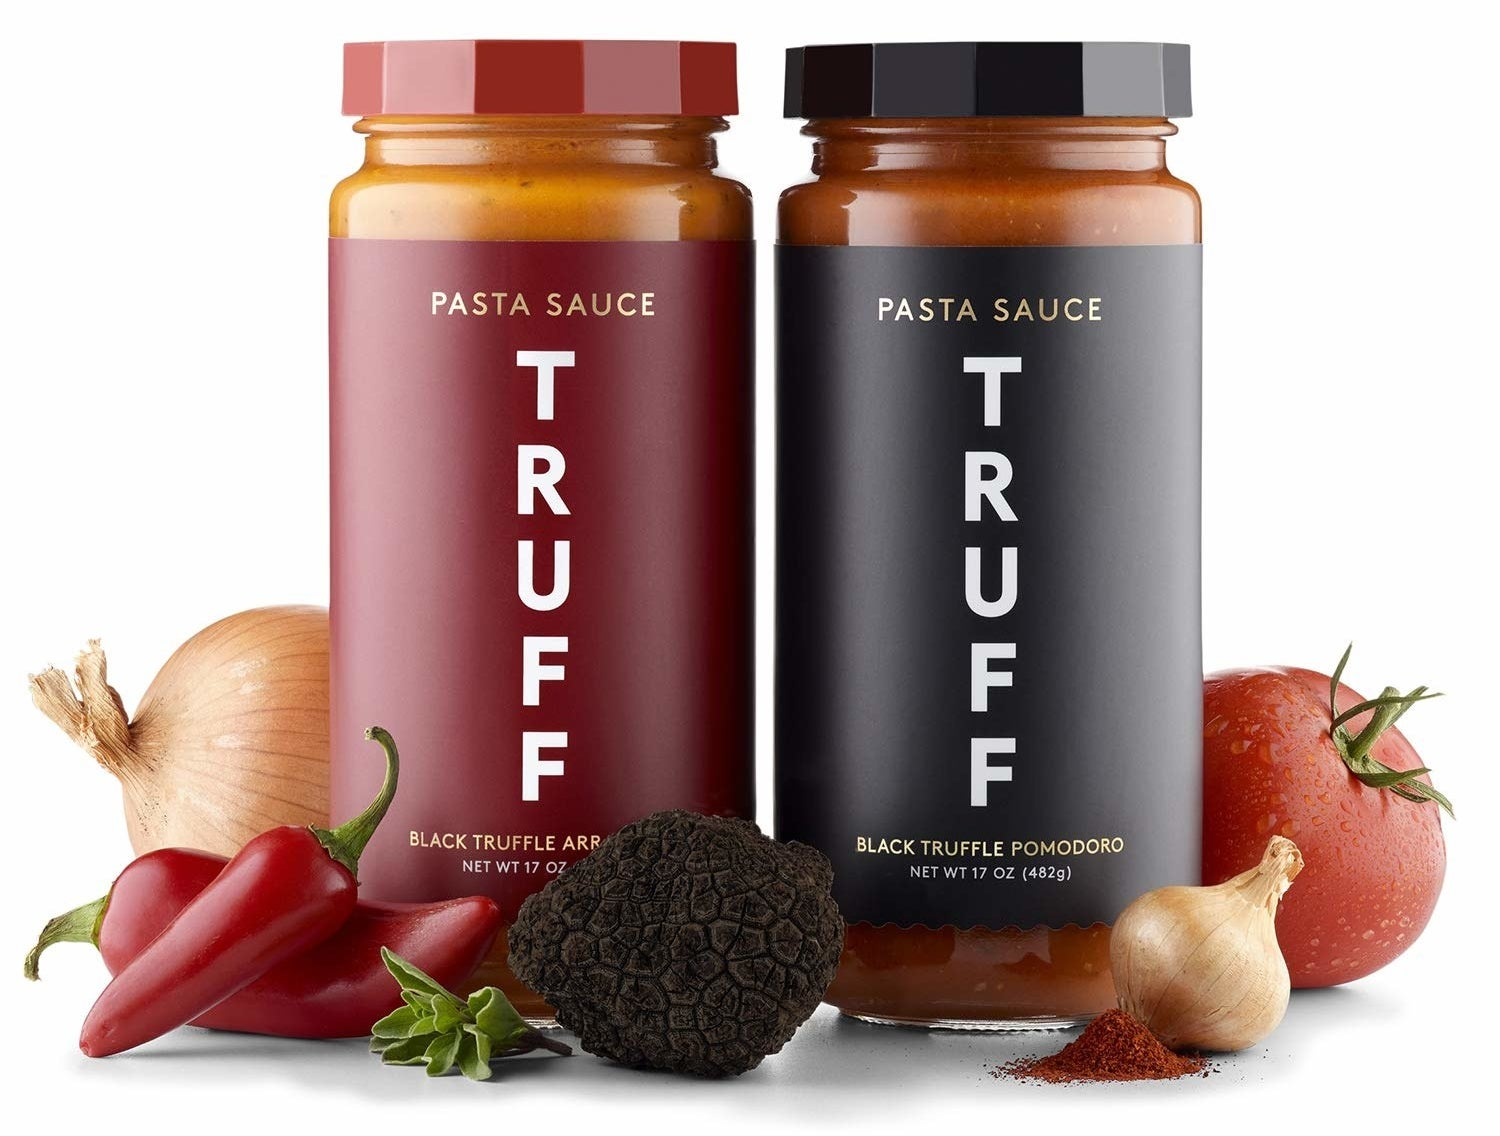 The jars of the Truff Pomodoro and Arrabbiata sauces next to onions, chilis, garlic, tomatoes, and truffles